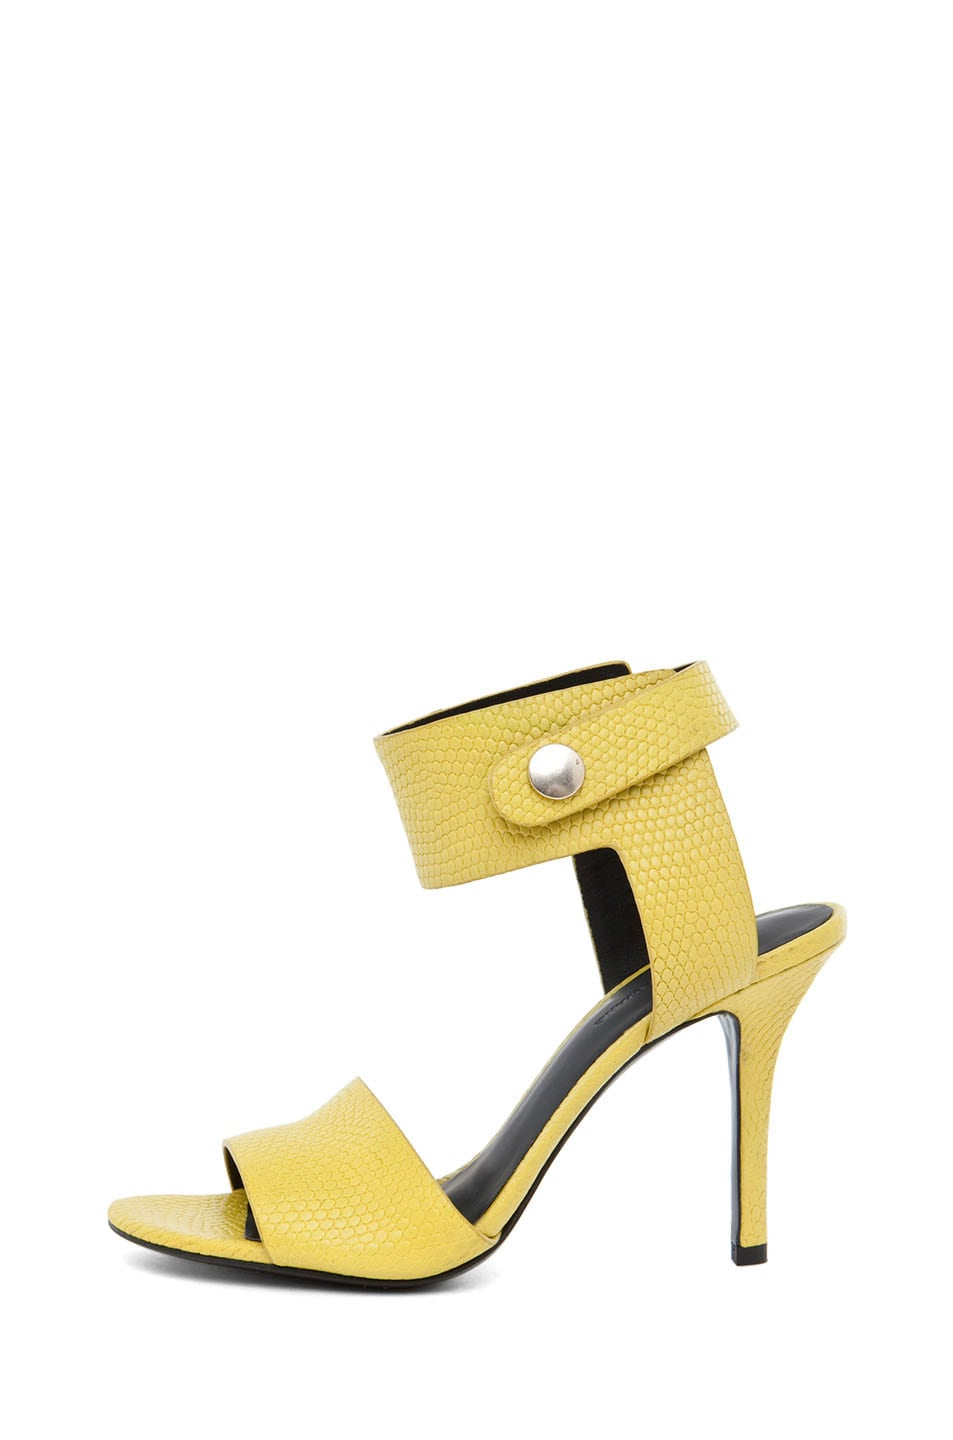 Image 1 of Alexander Wang Amber Lizard Print Sandal in Acid